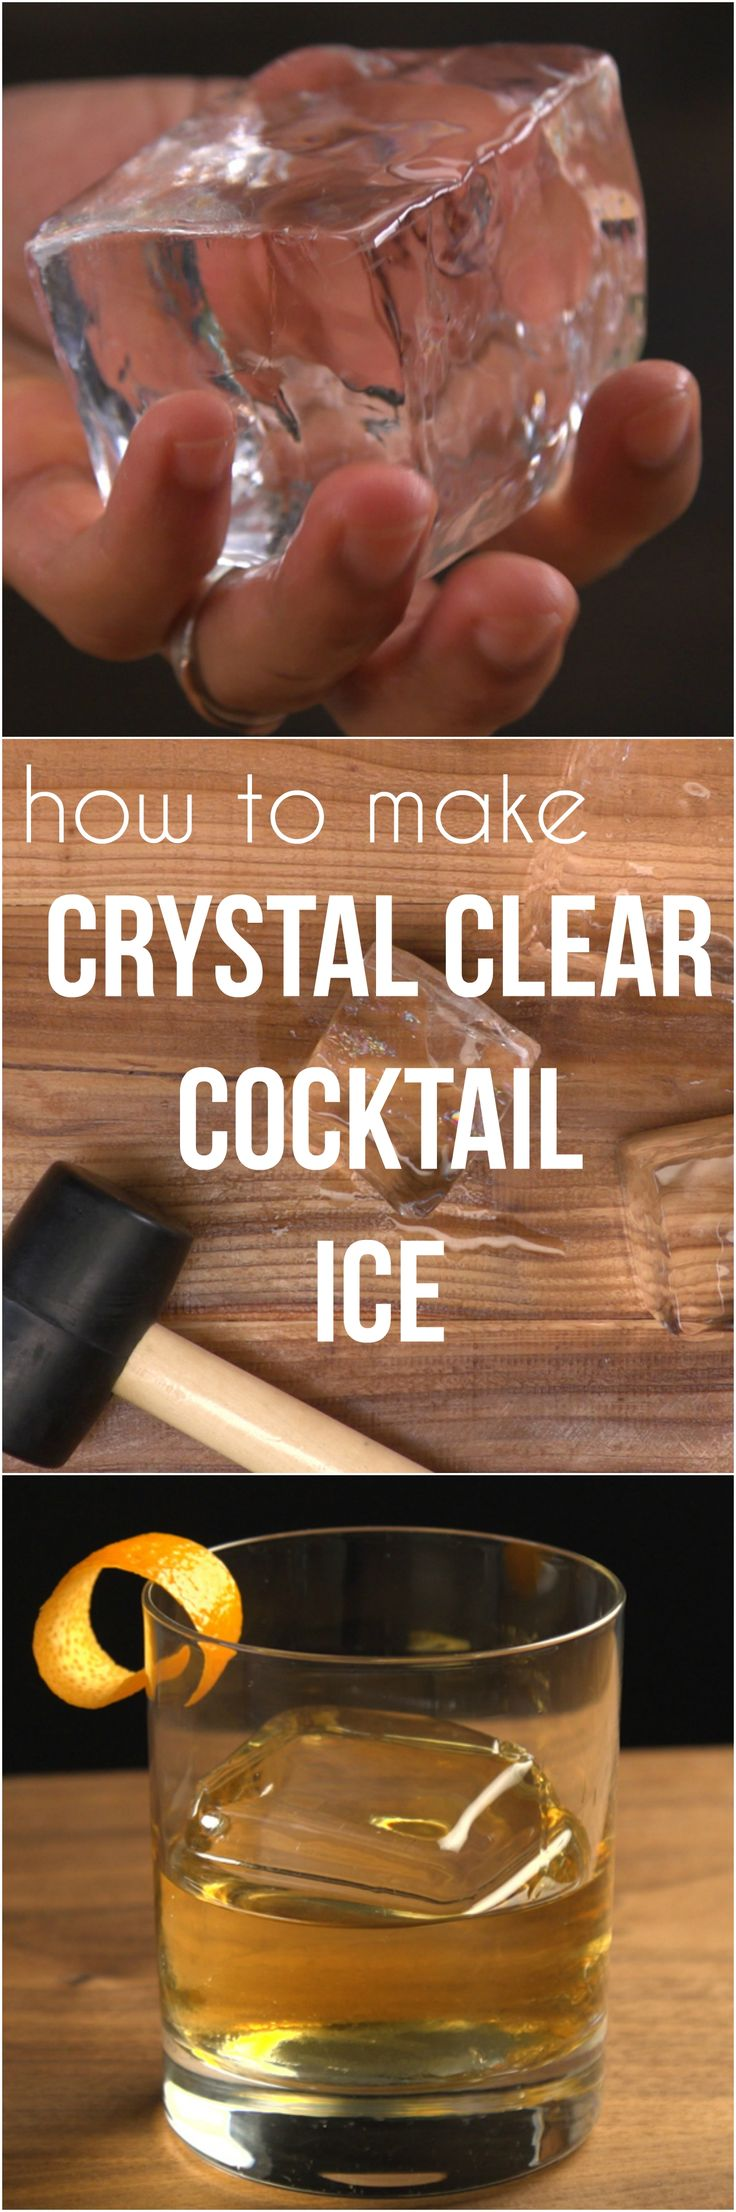 Shake up your bartending game (or stir it up, if you prefer) with a glassy rock of perfectly clear ice. Artisanal ice cubes are making a splash in the craft cocktail world — and when you try a drink with ice cubes that aren't cloudy, the difference will be crystal clear. We'll show you a surprisingly simple and inexpensive way to make flawless cocktail ice at home.